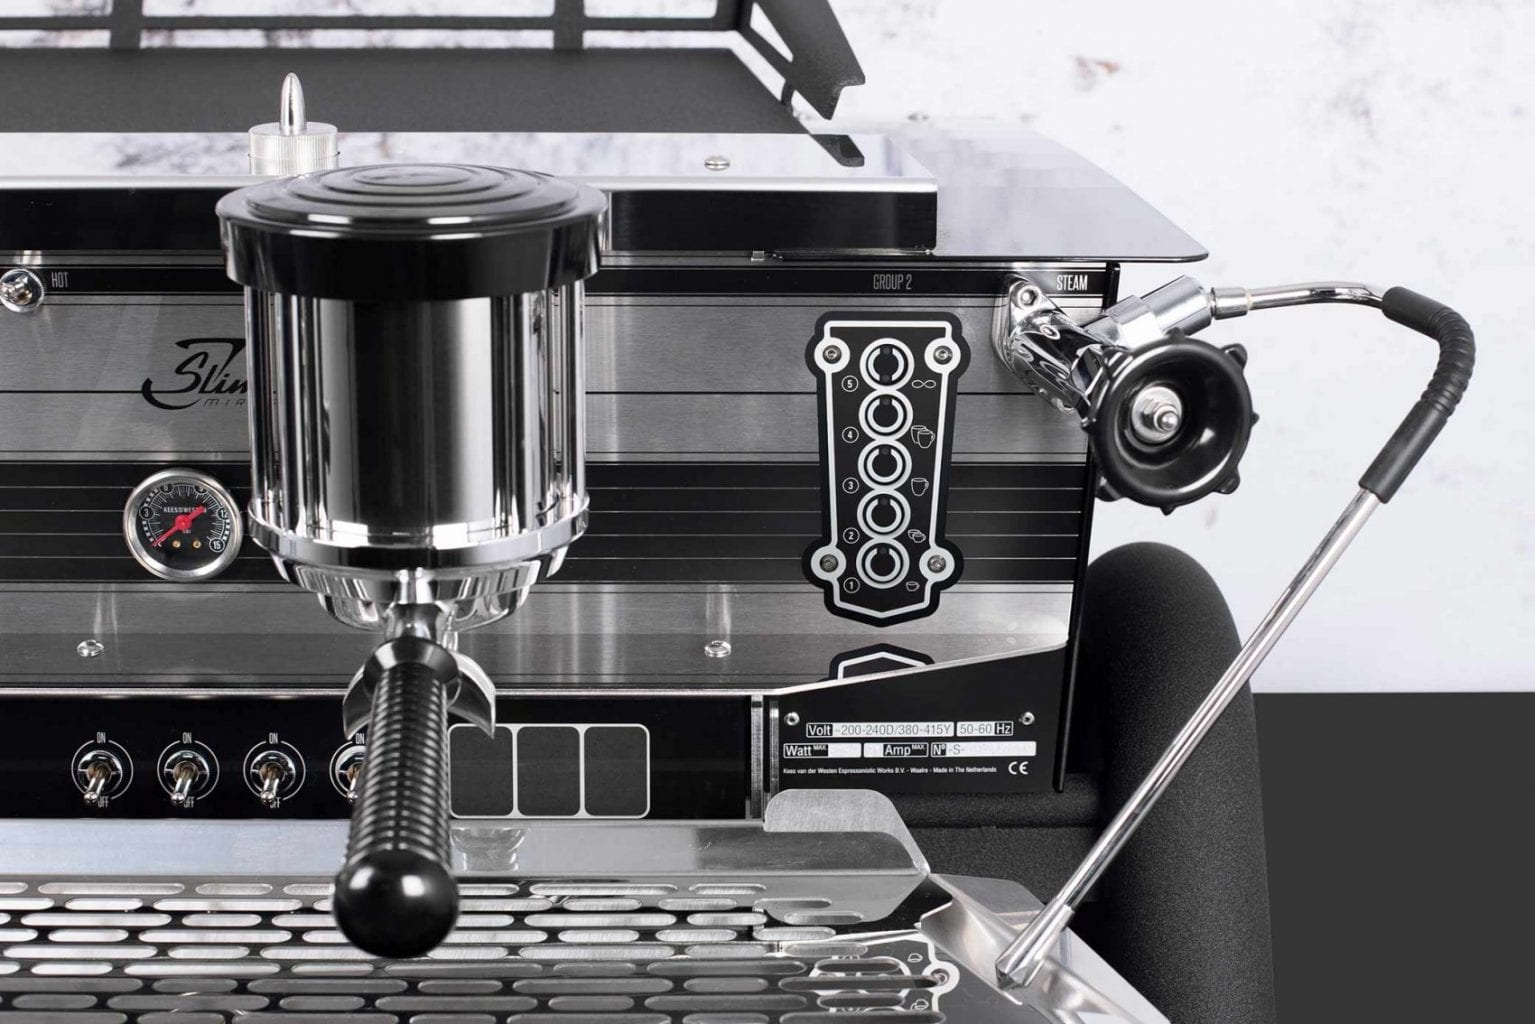 Multi Boiler Espresso Machine Slim Jim